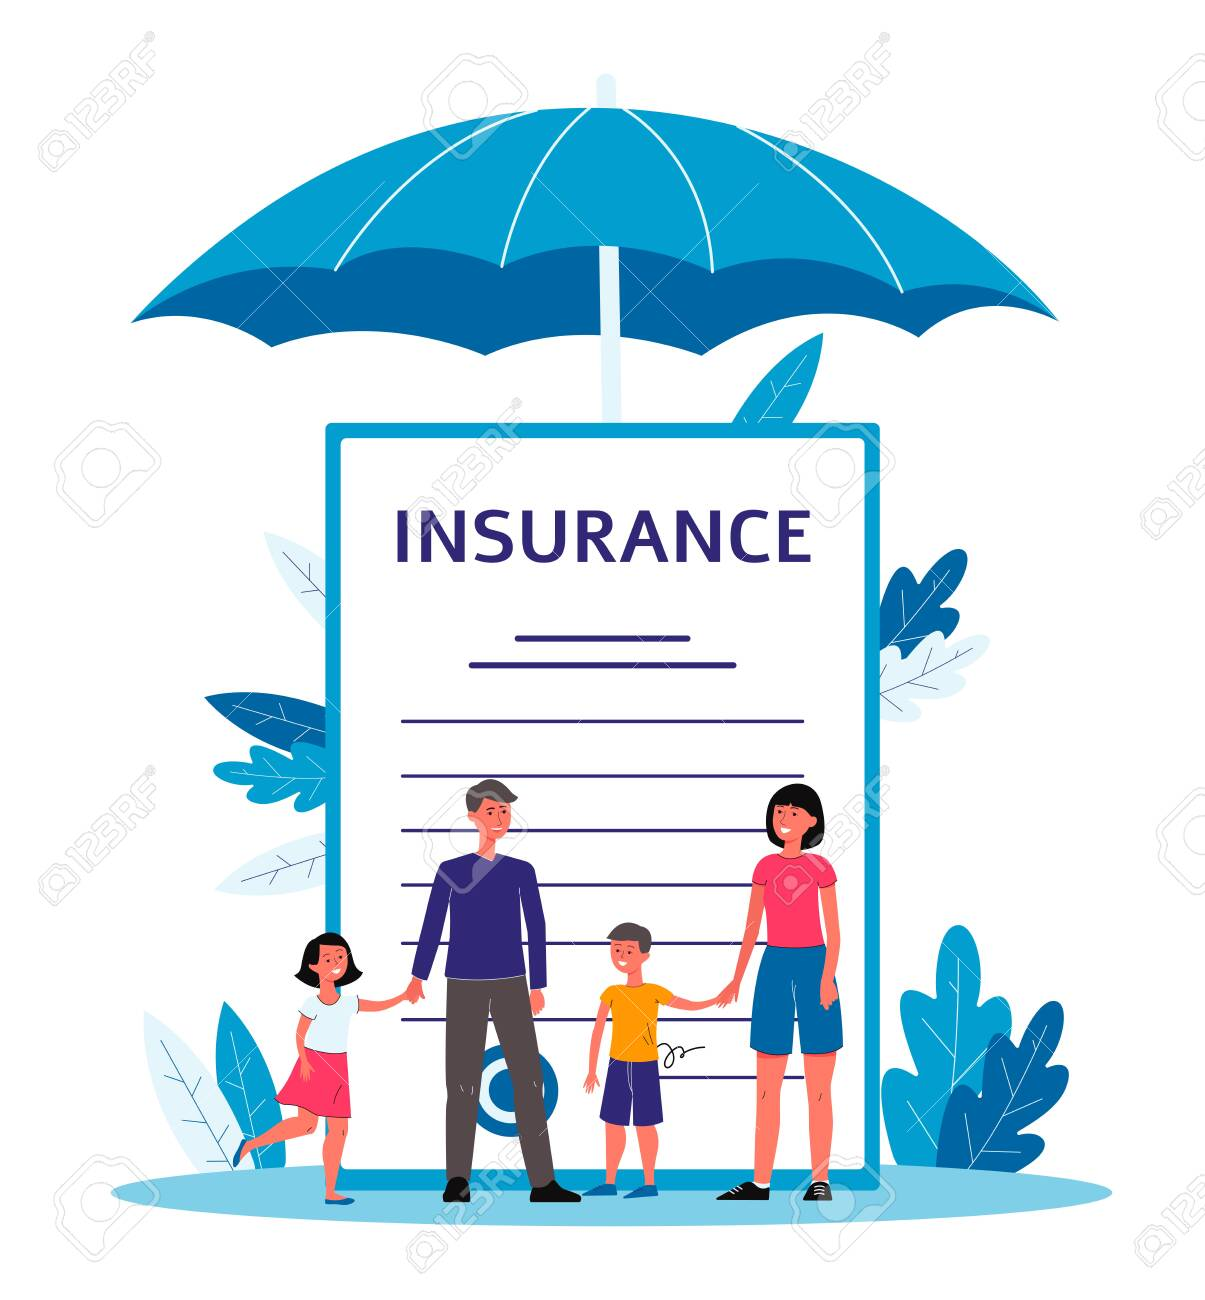 Family insurance - cartoon people standing near giant contract document with text under big umbrella. - 130798328